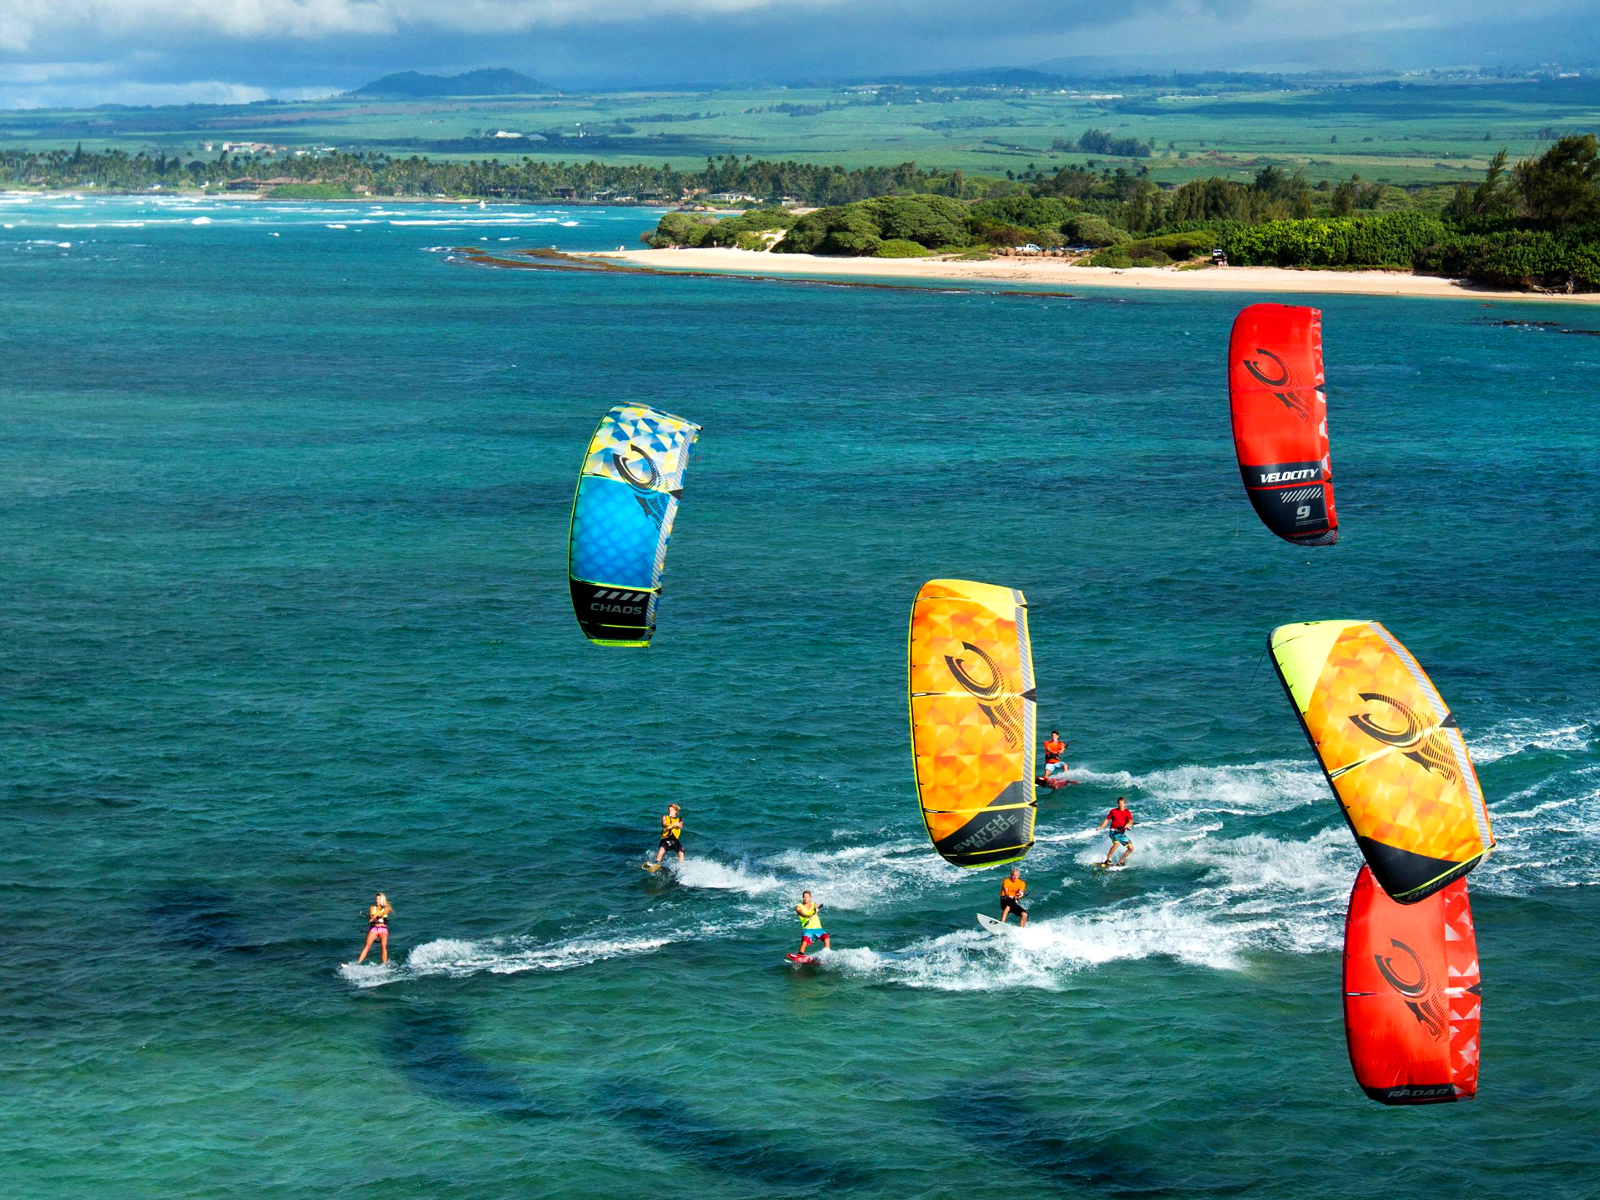 kitesurf wallpaper image - The 2015 Cabrinha Kites teamriders kitesurfing off the coast of Hawaii. - in resolution: Standard 4:3 1600 X 1200